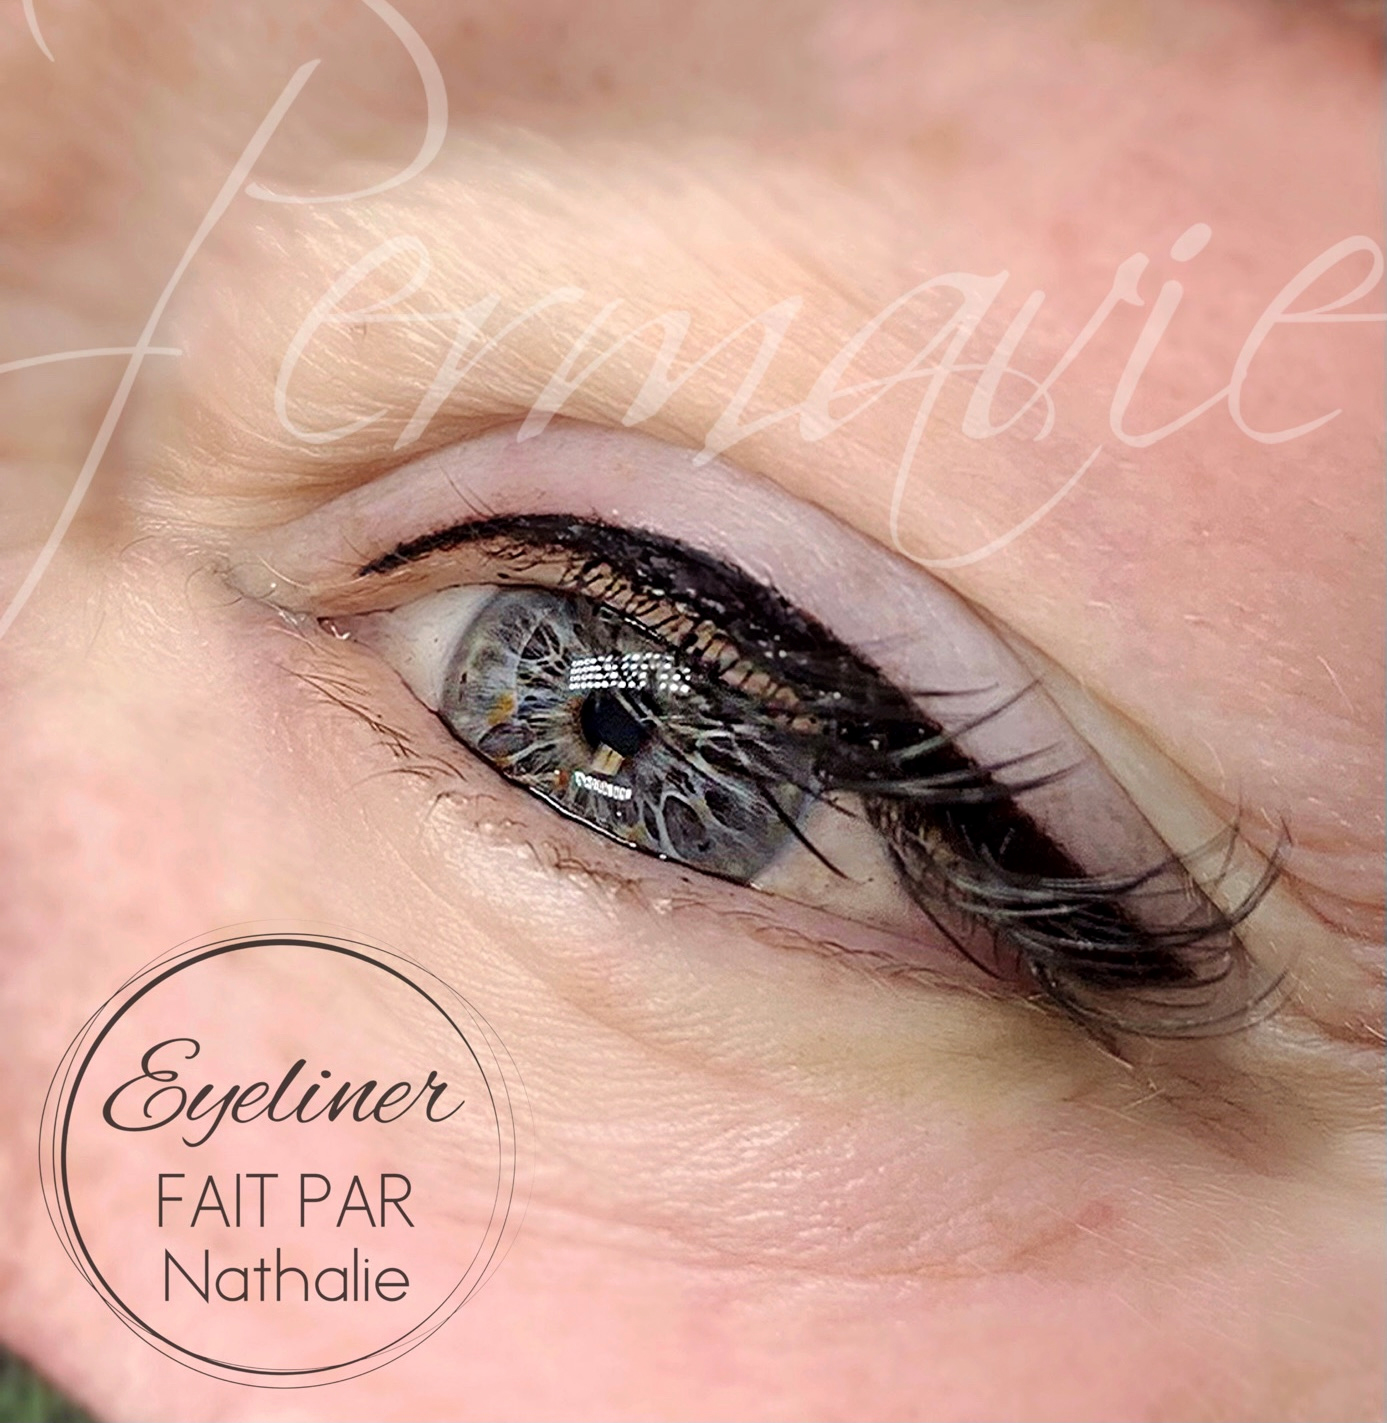 Maquillage permanent Yeux - Eyeliner